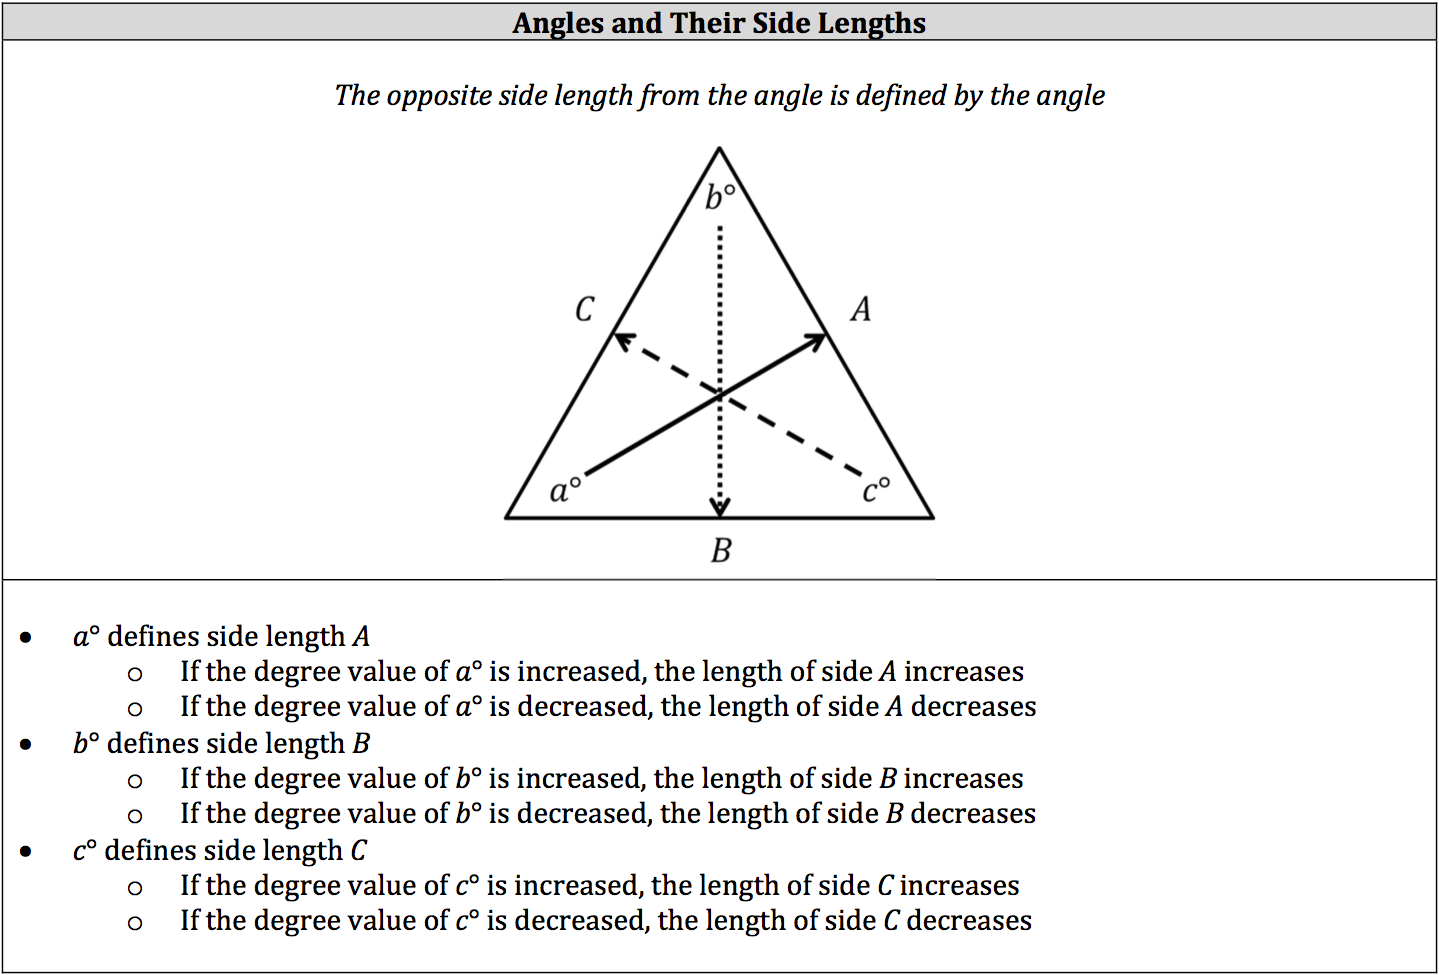 angles-and-their-side-lengths